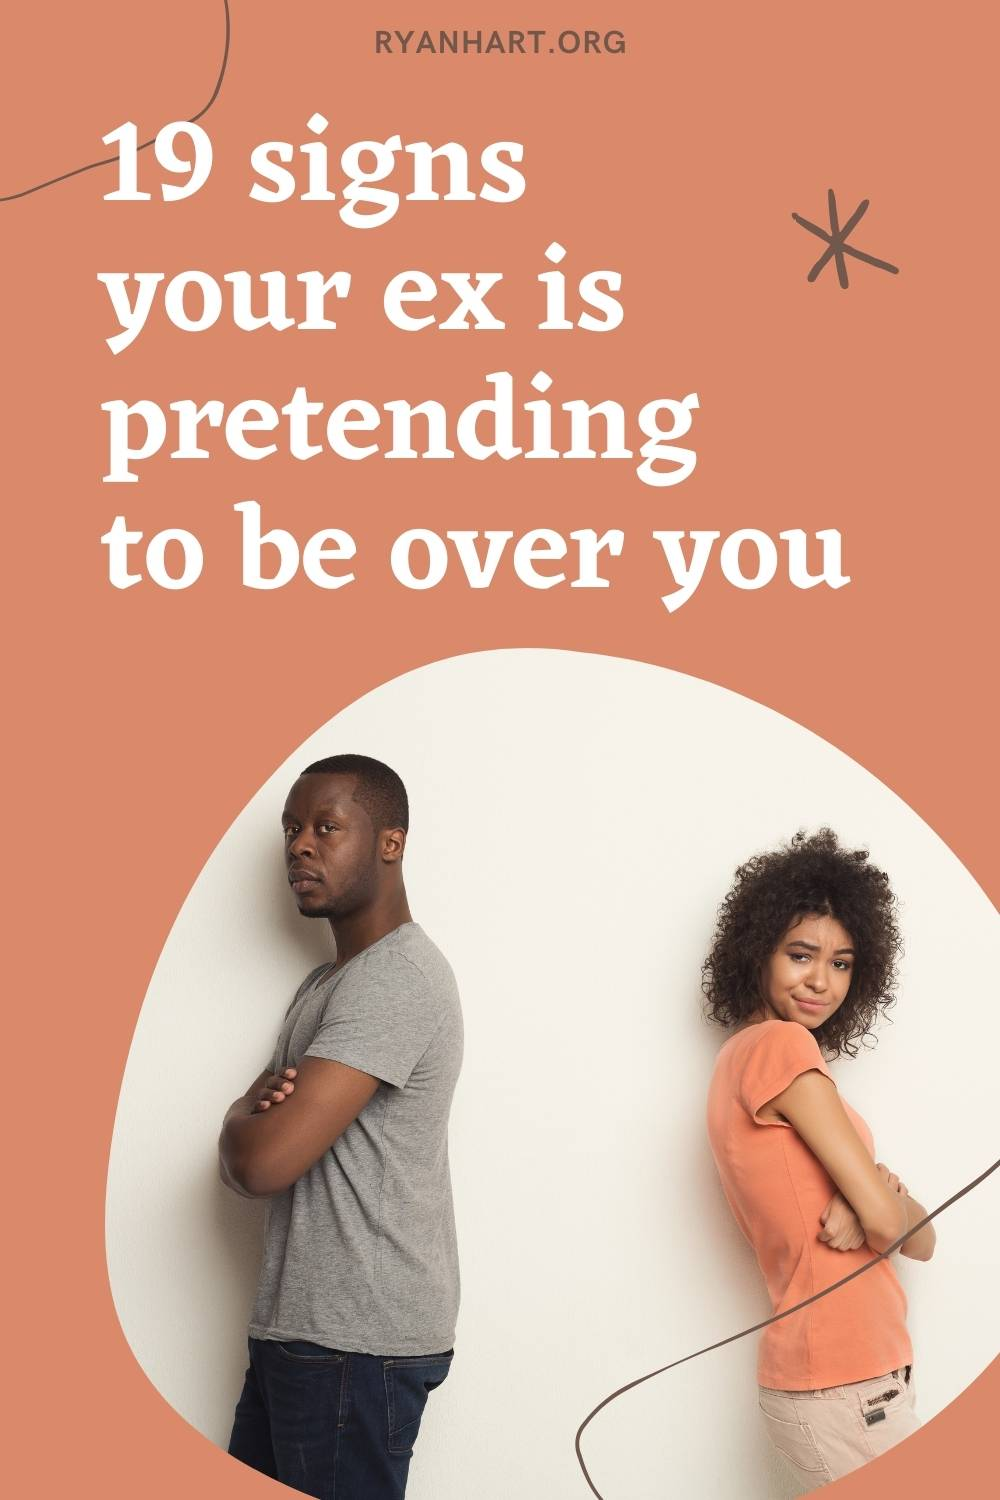 Signs ex is pretending to be over you